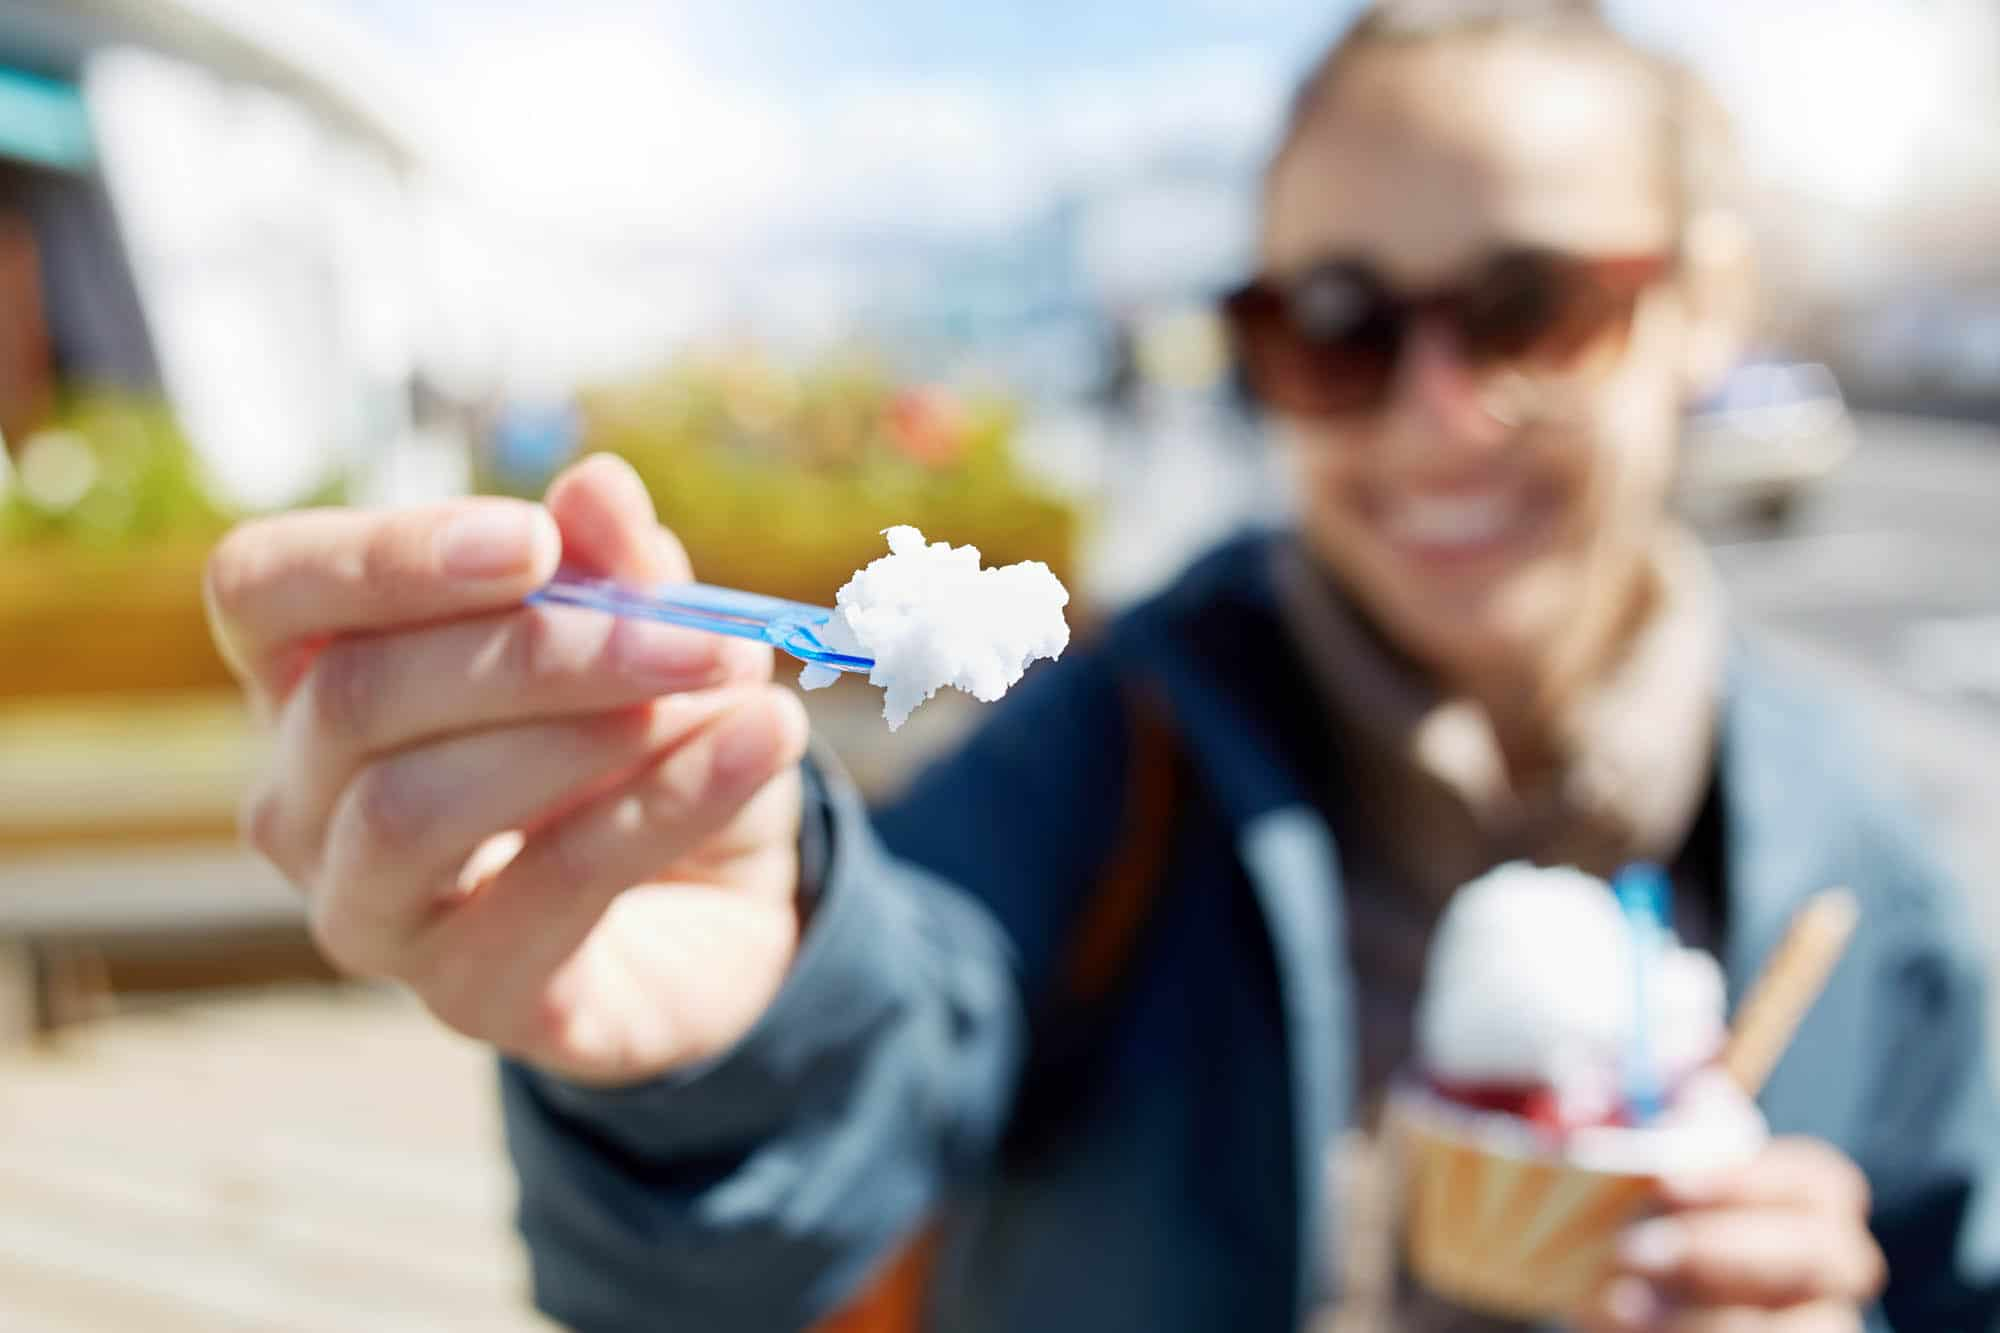 Ice cream in the city - Valdís - iceland family vacation